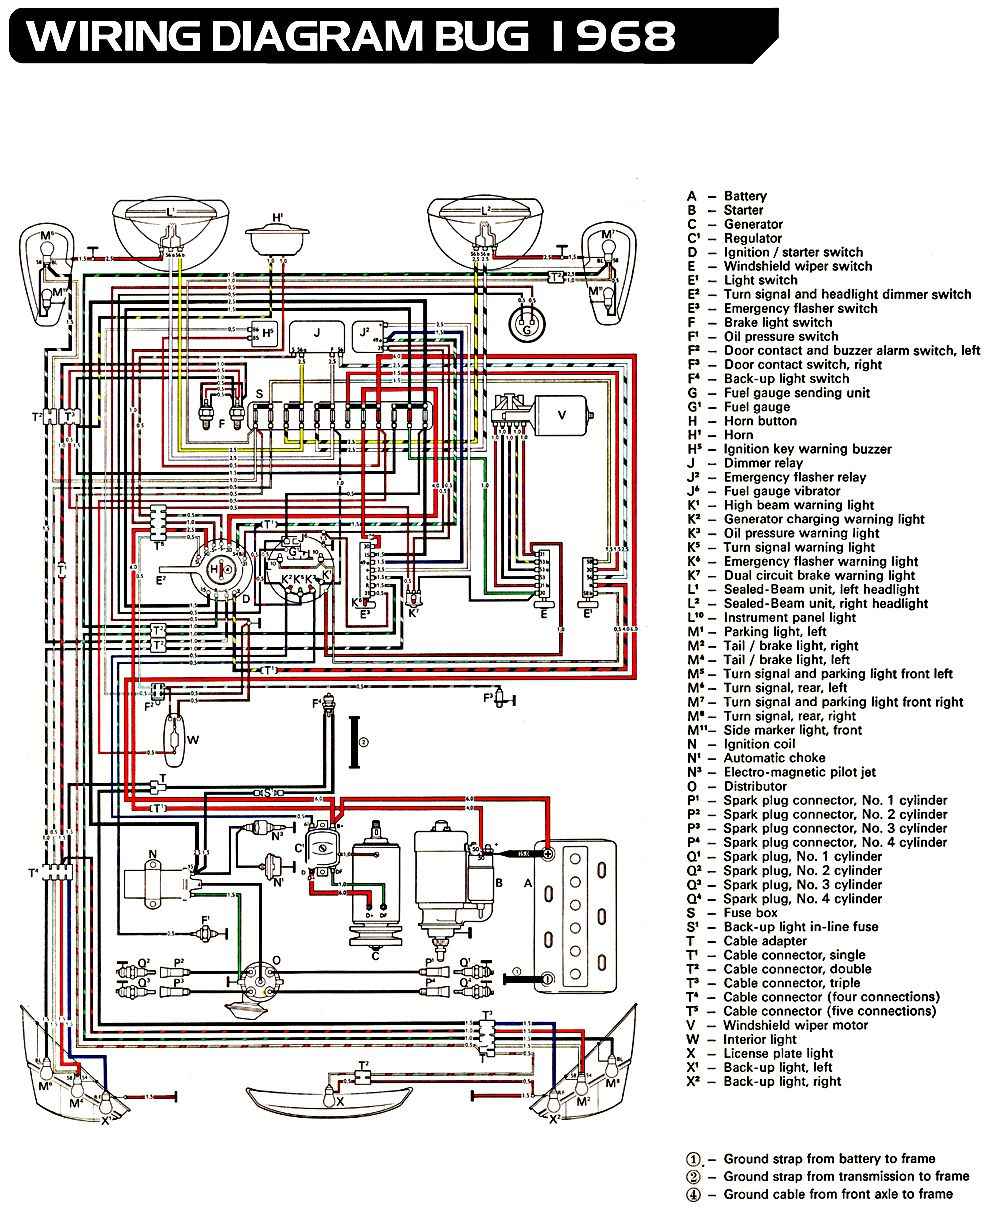 3a1908112d3826270ed5e3be362292bf vw bug ignition wiring diagram 73 vw wiring diagram free vw bug wiring at panicattacktreatment.co